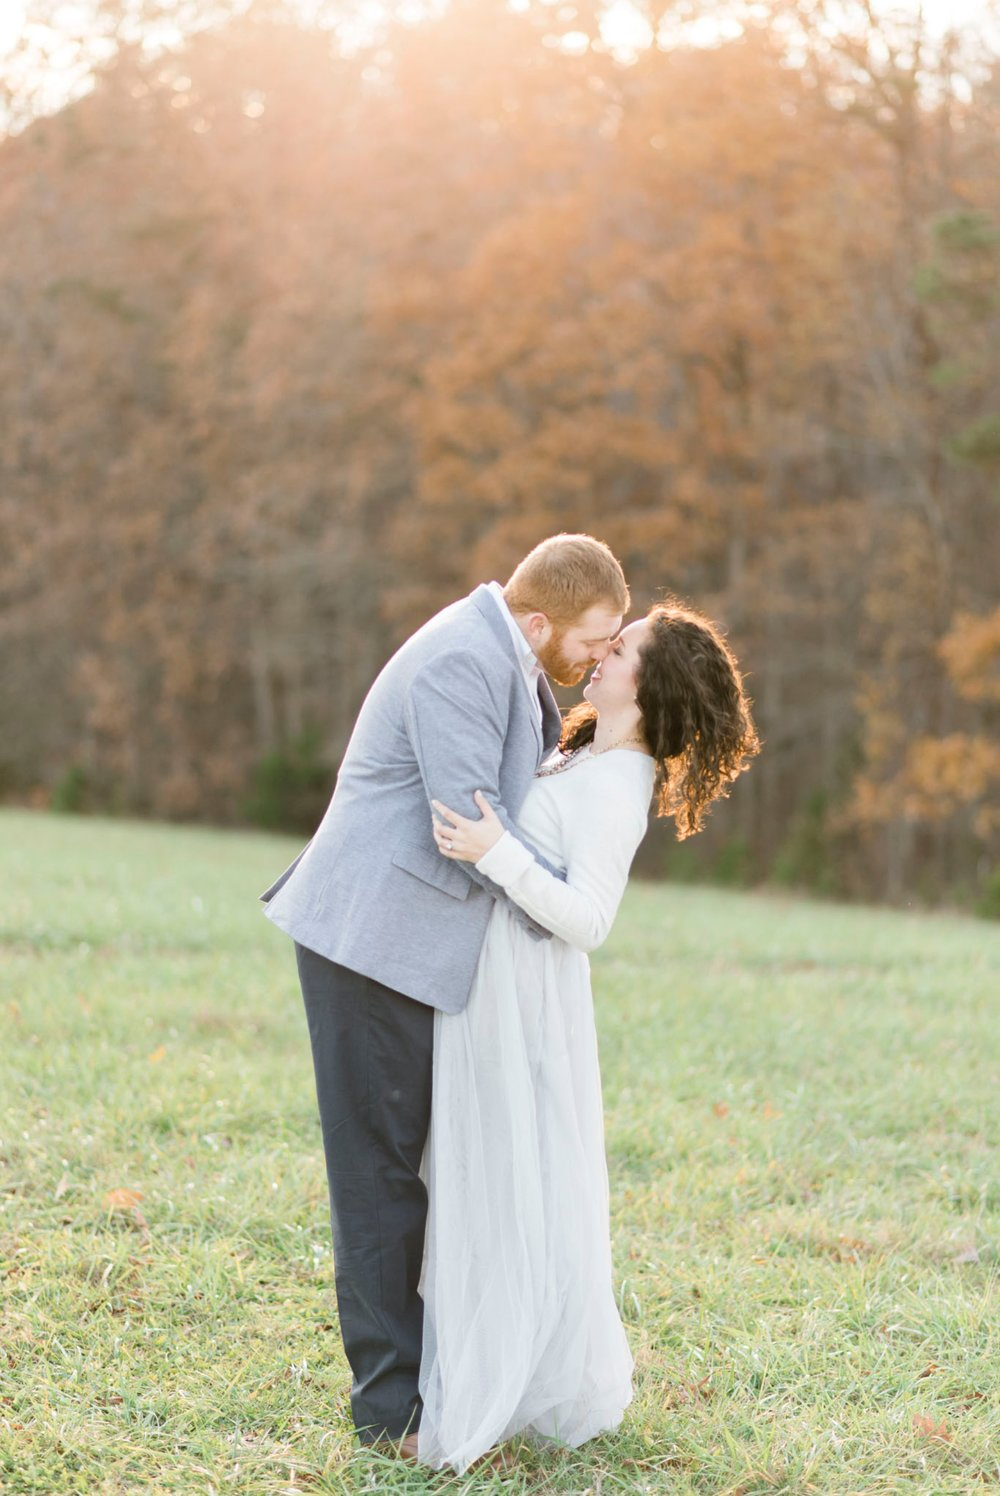 SorellaFarms_EngagementSession_VirginiaweddingPhotographer 24.jpg